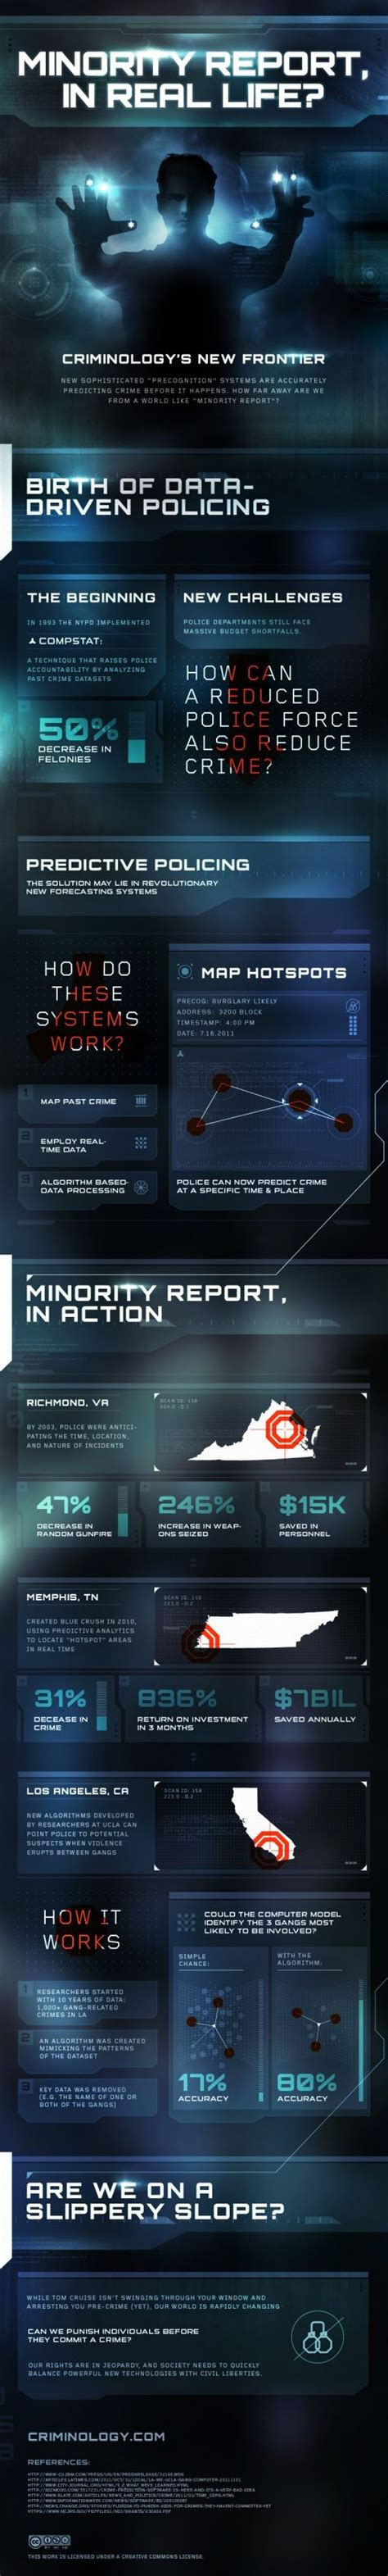 Minority Report in real life? [Infographic]